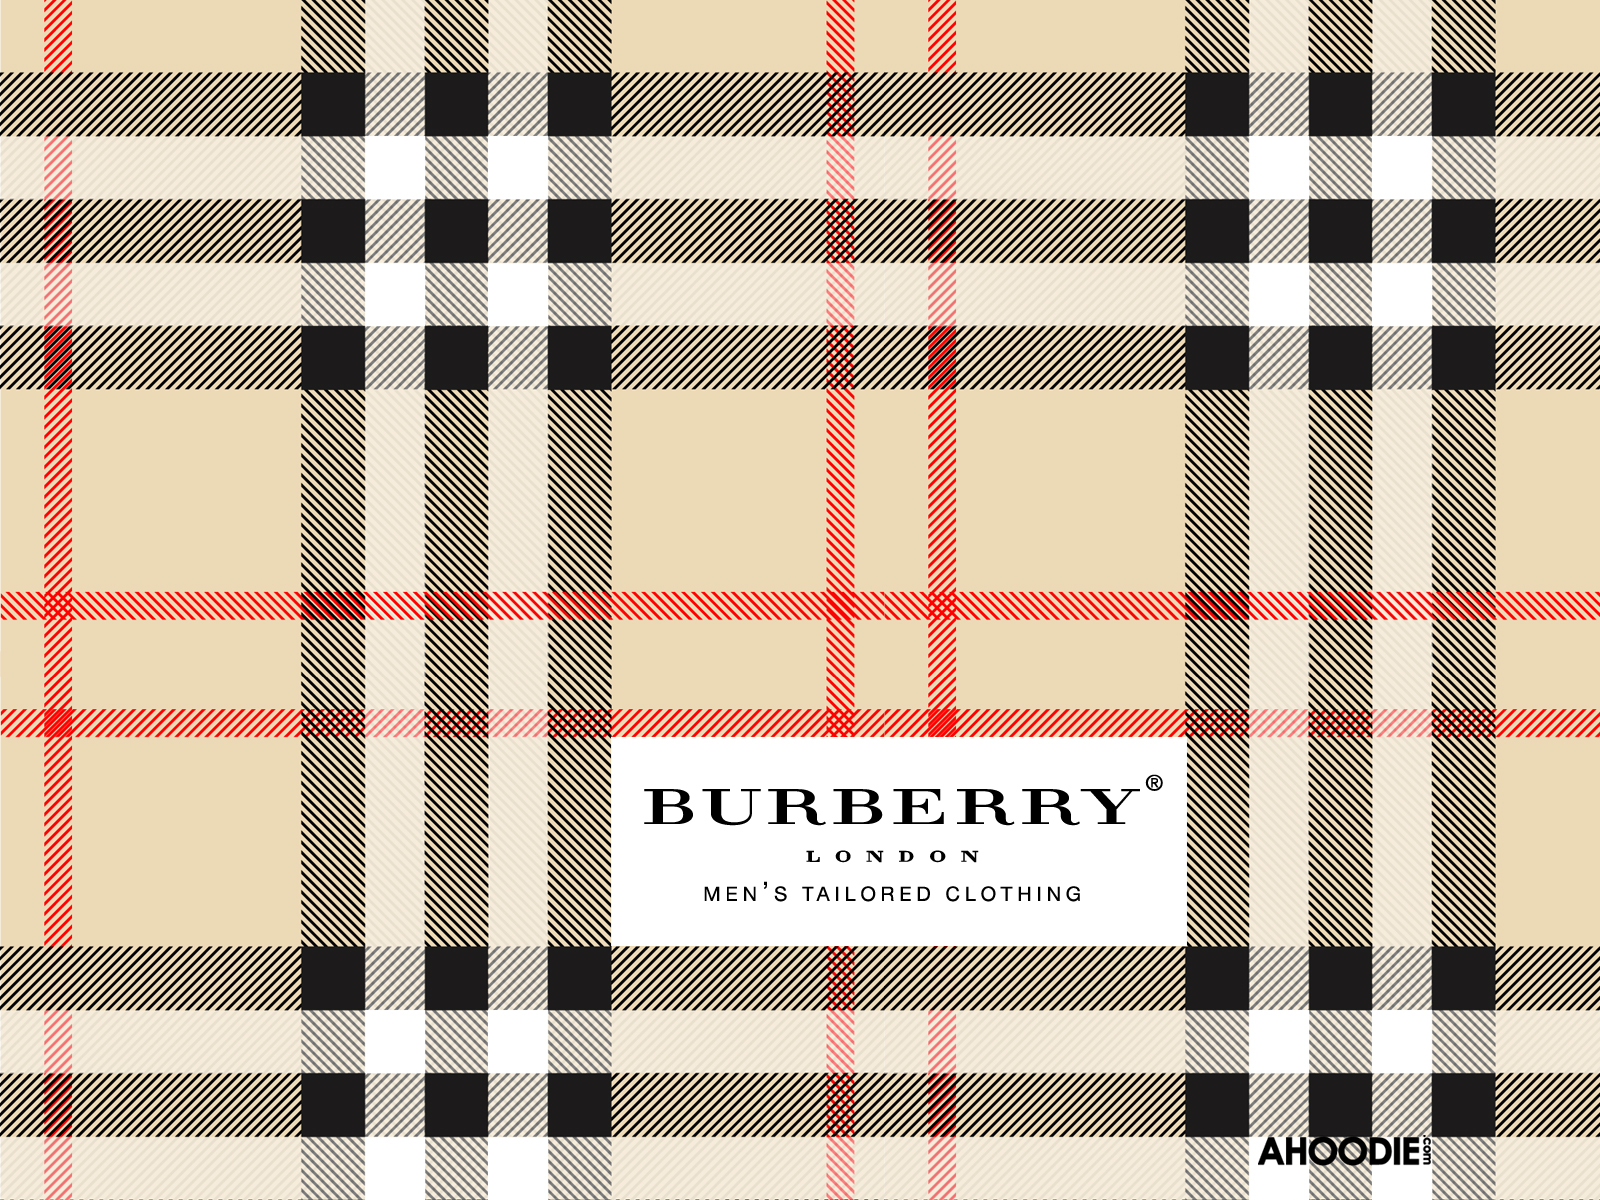 WALLPAPERS: Burberry Desktop Background Wallpaper BurberryWallpaper5